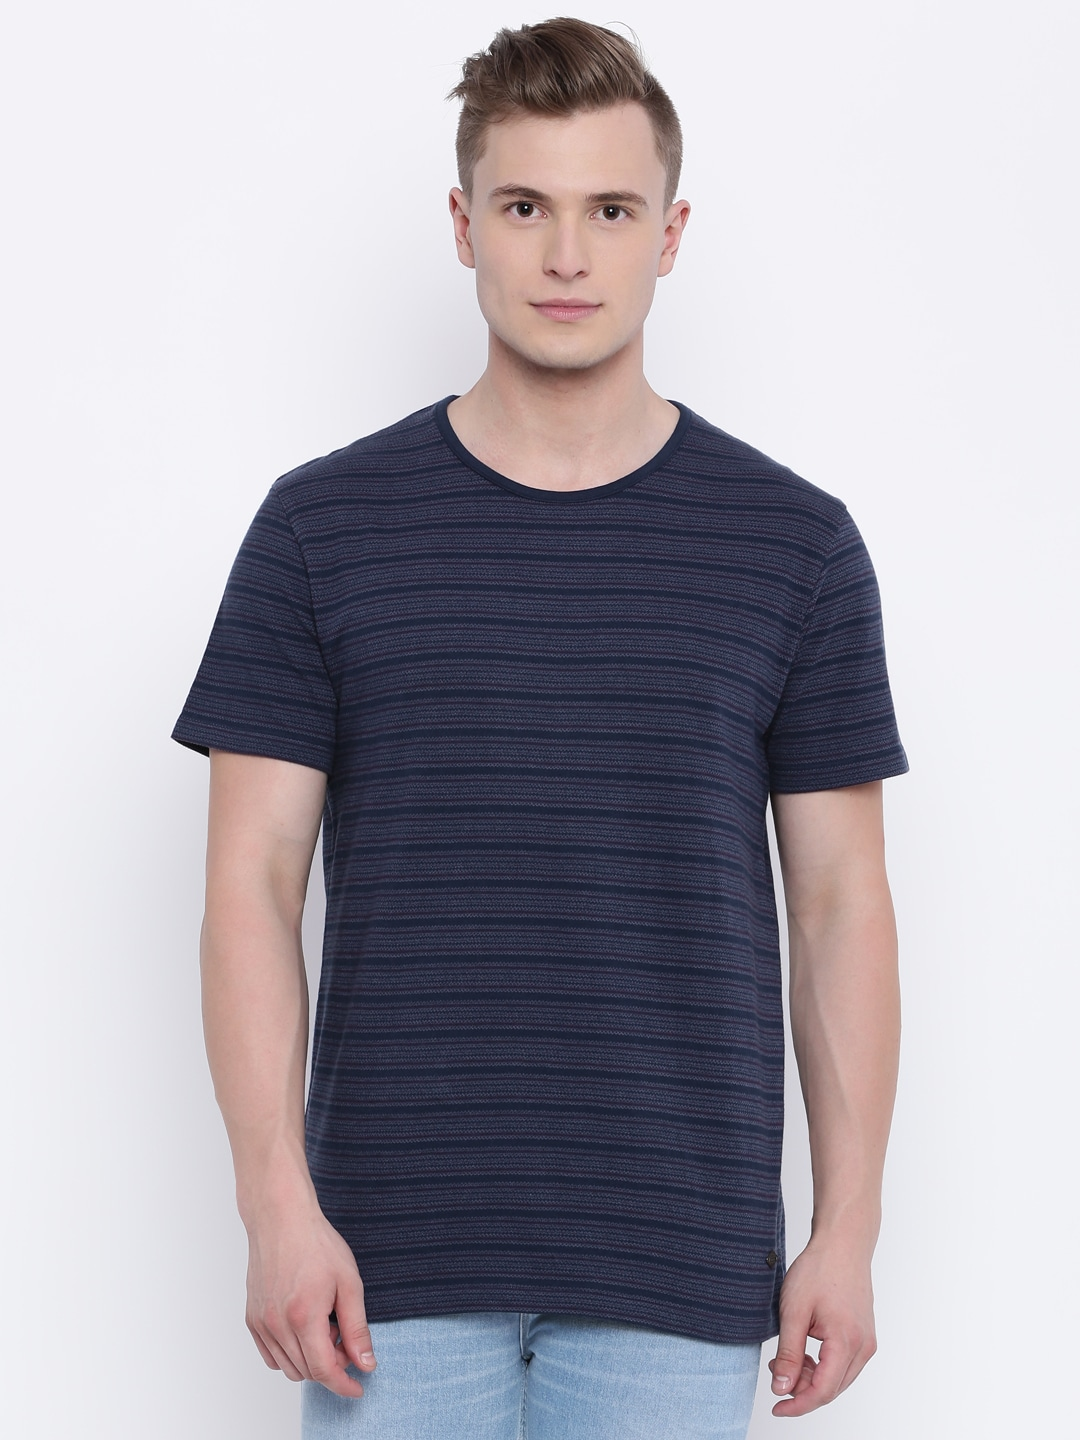 Black t shirt navy jeans - Black T Shirt Navy Jeans 50